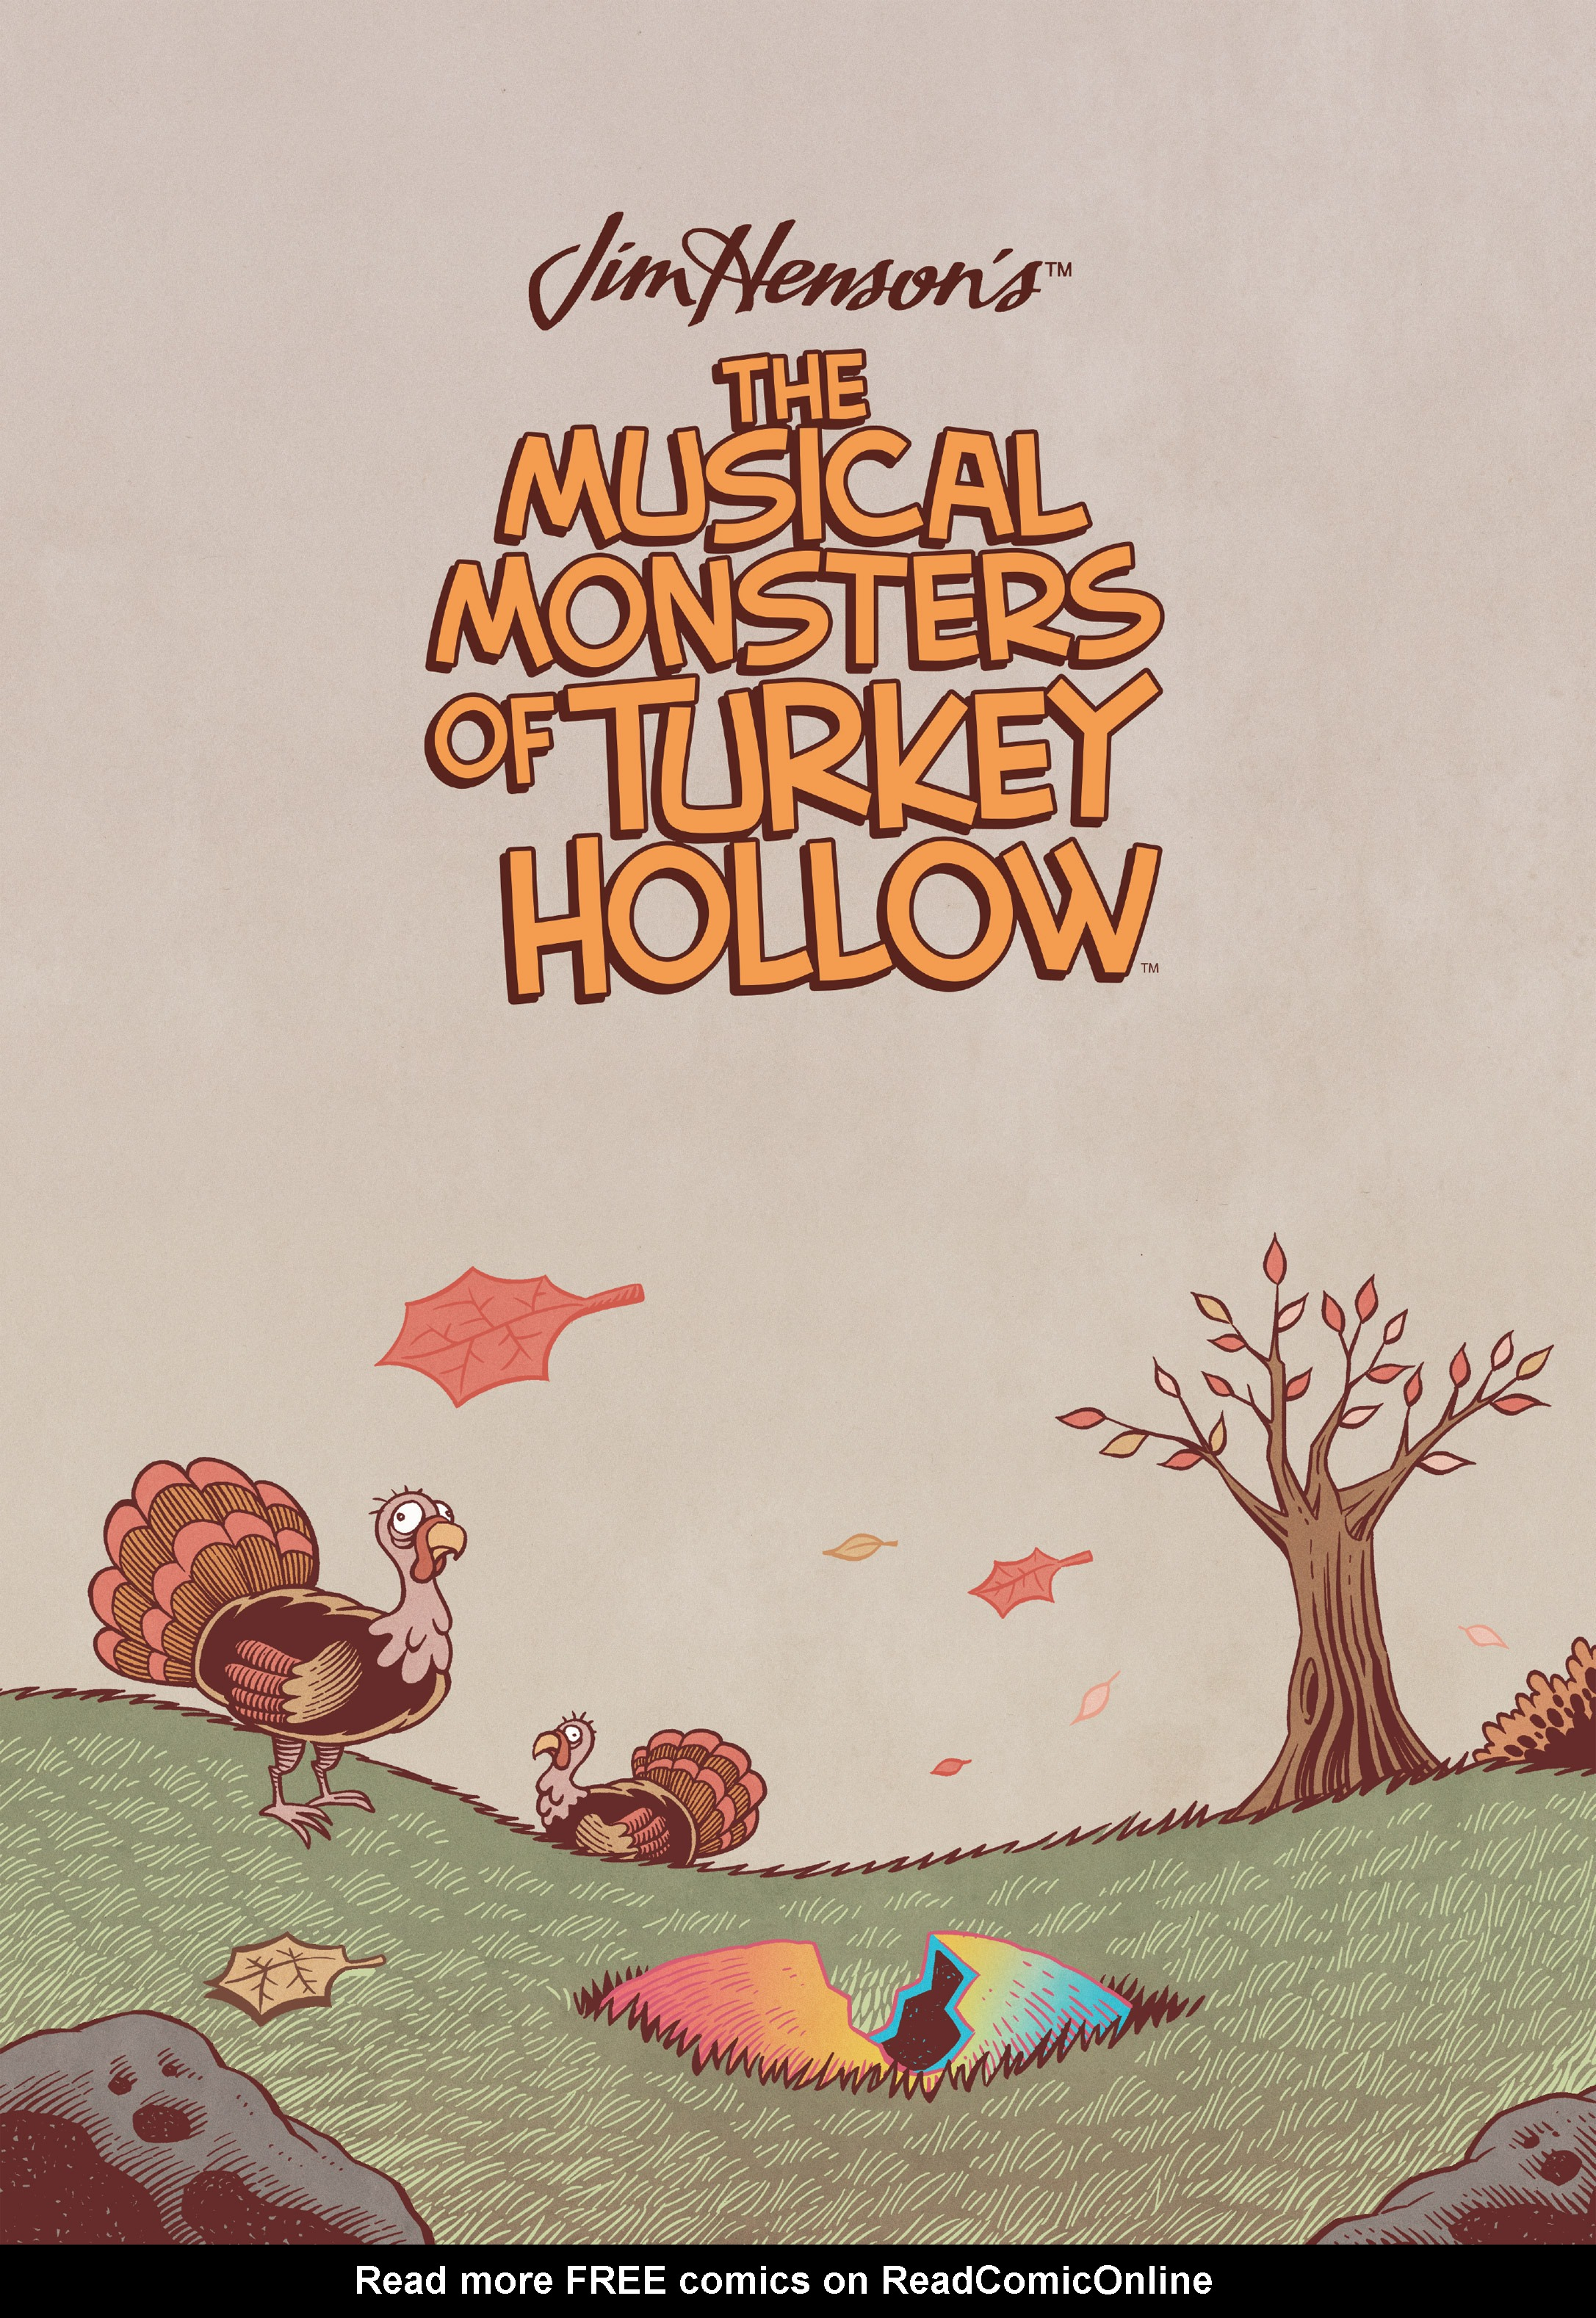 Read online Jim Henson's The Musical Monsters of Turkey Hollow comic -  Issue # Full - 15